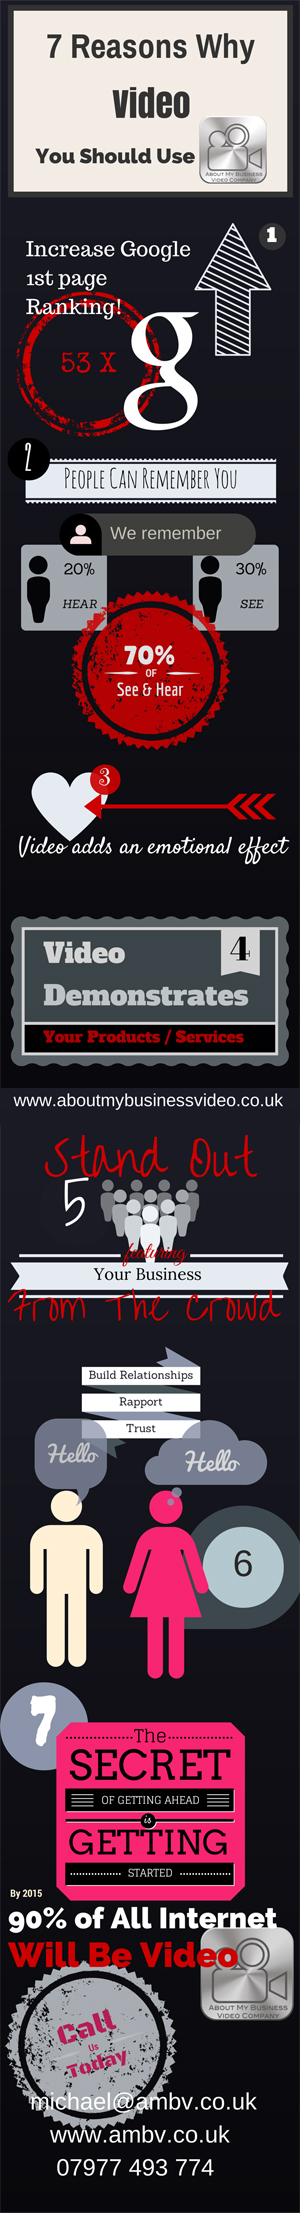 About My Business Video Company Why Video Infographic image